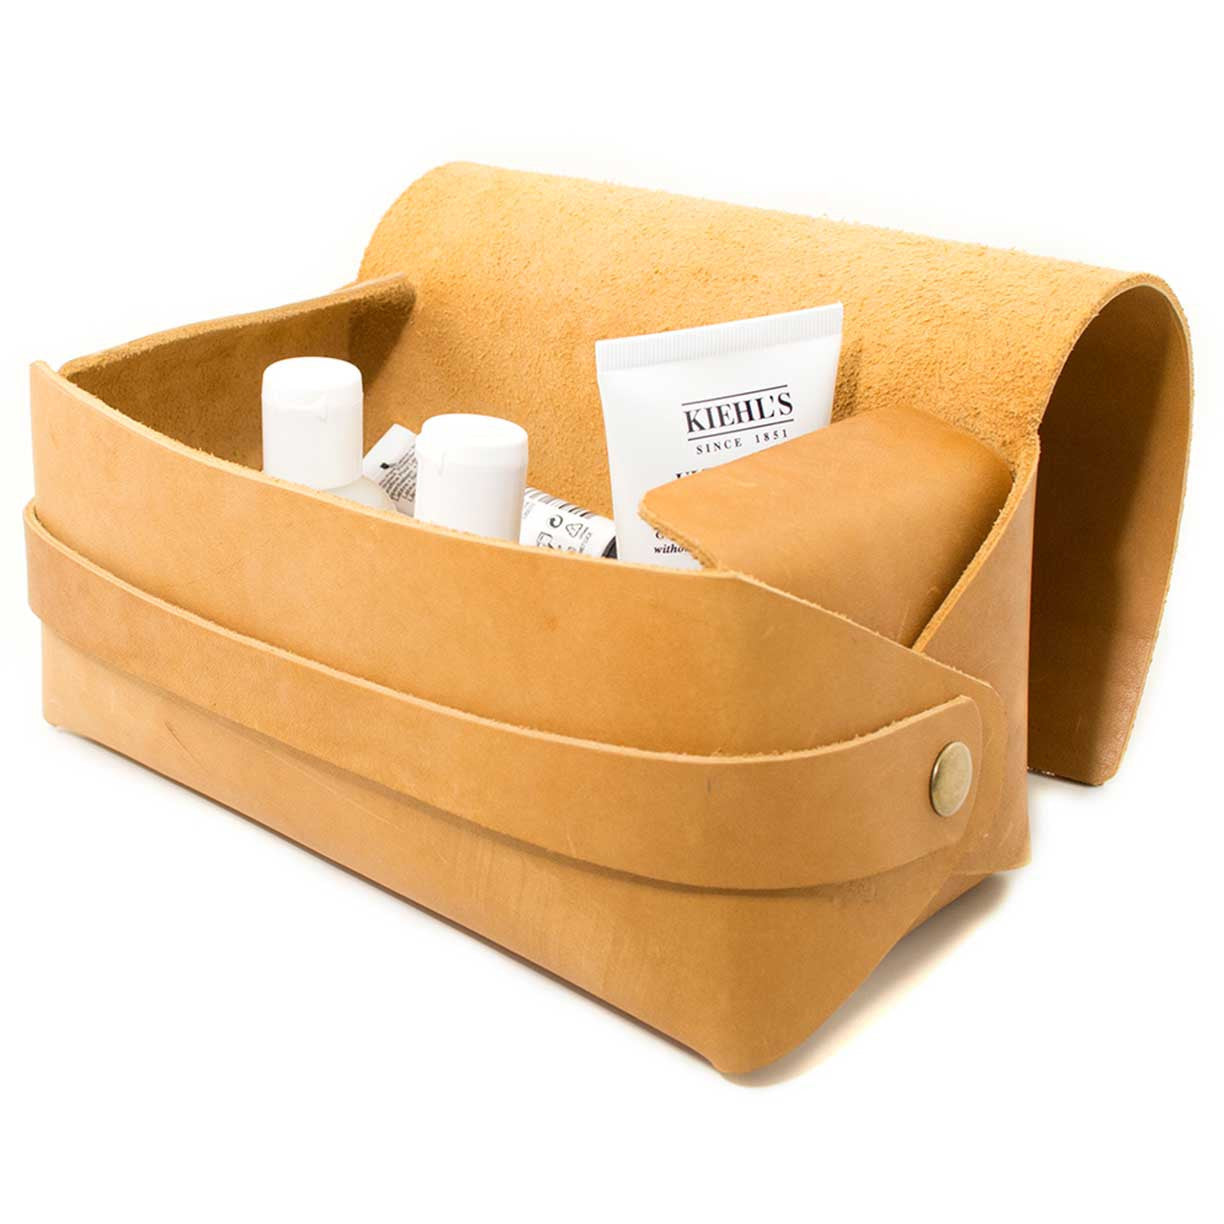 Reservoir Leather Dopp Kit, Amber